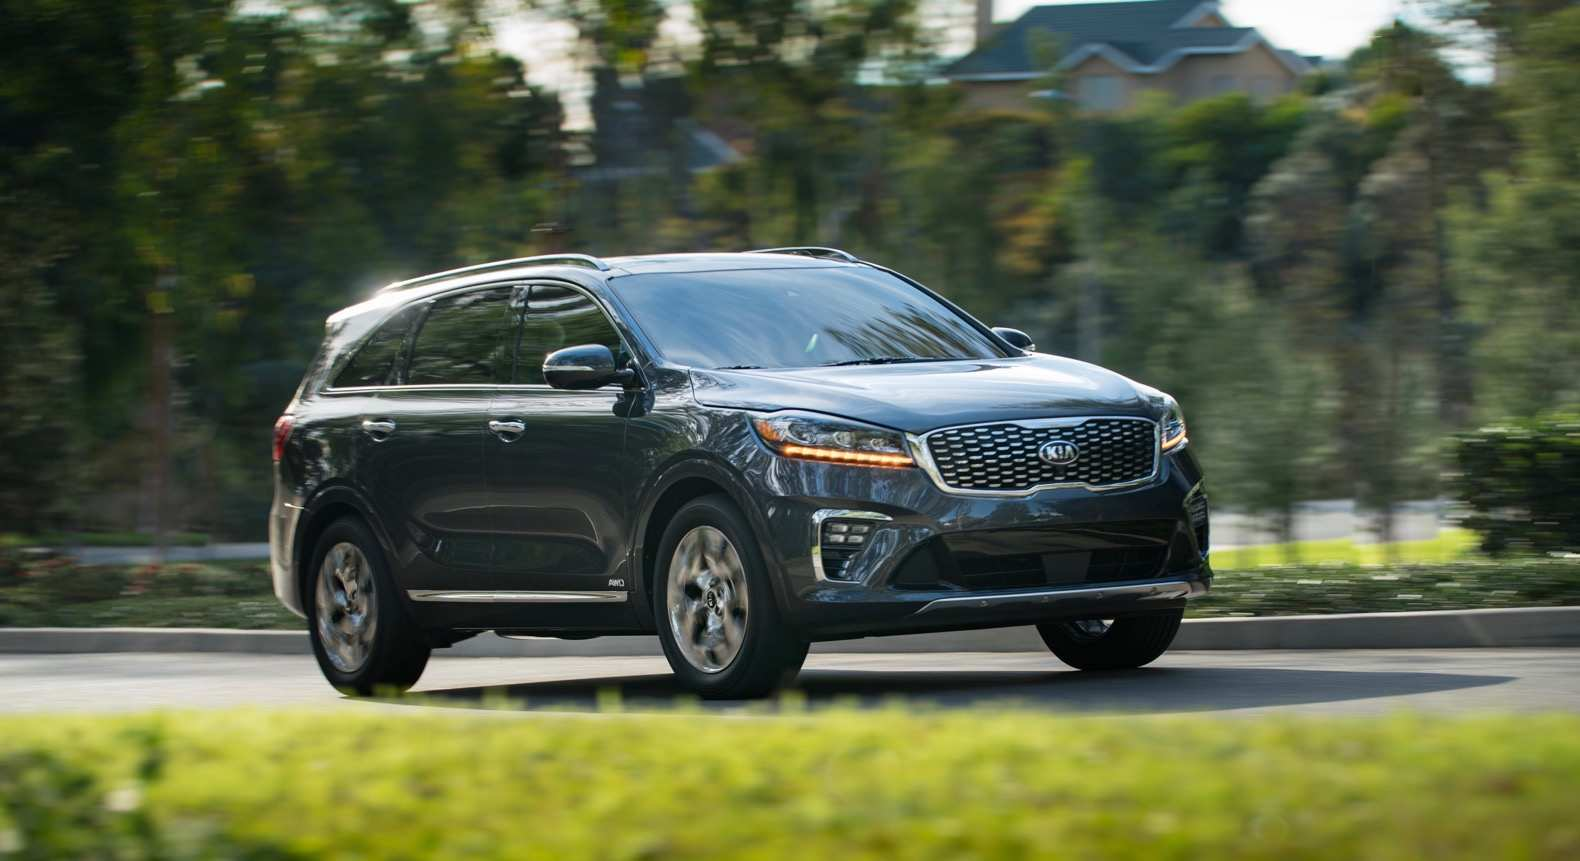 31 Best Review Kia Diesel 2019 Interior with Kia Diesel 2019